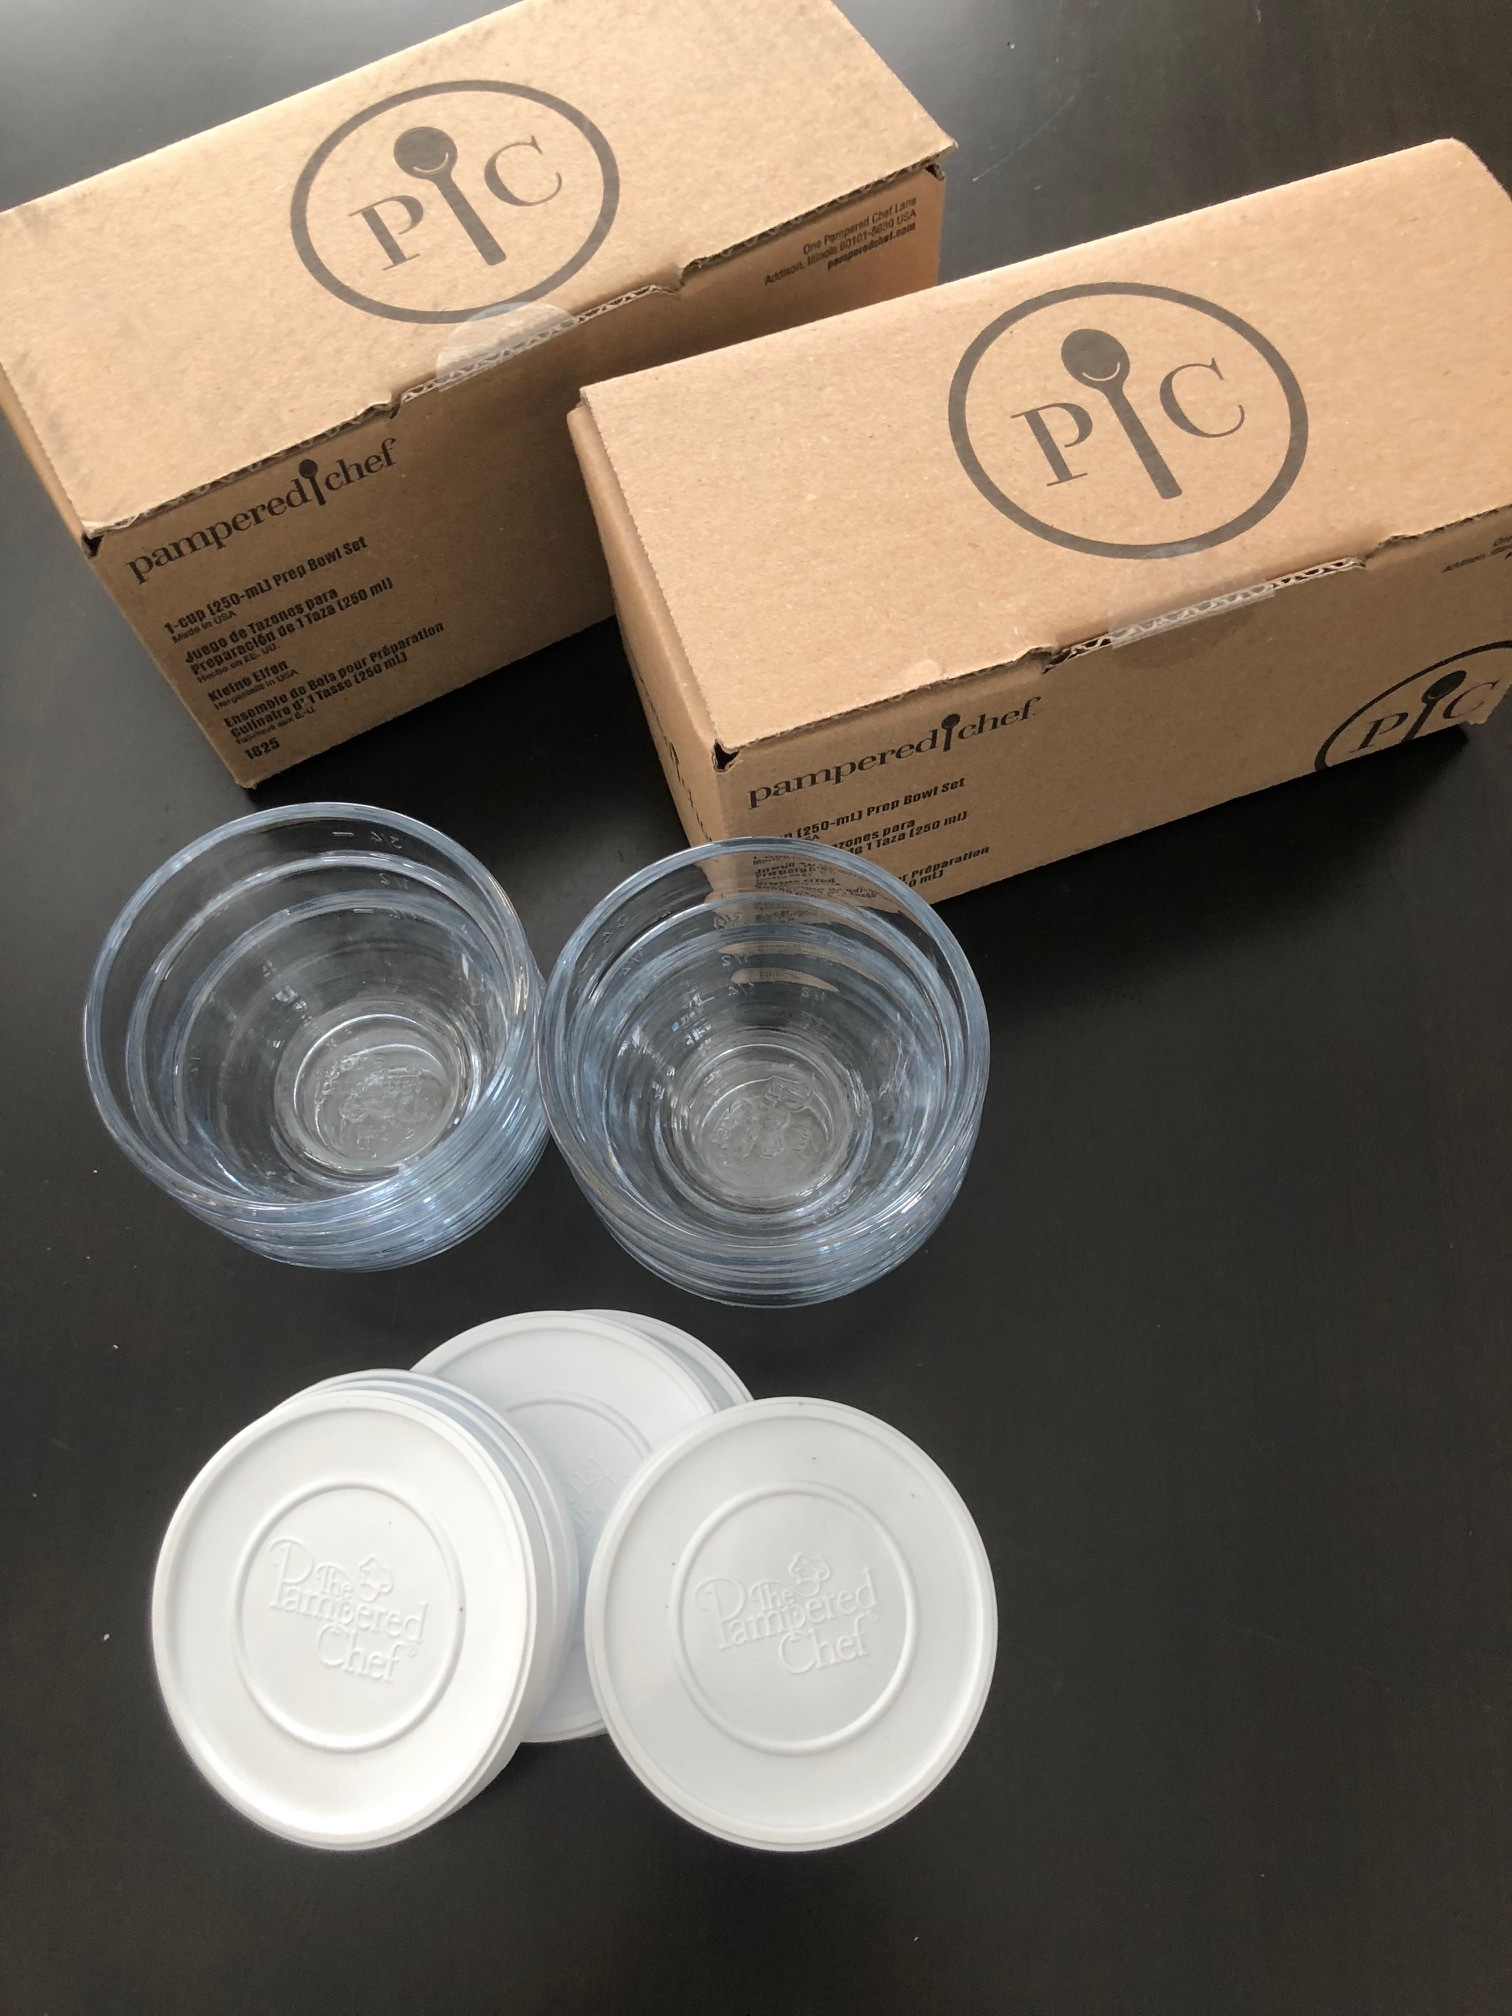 Six prep bowls come in a box. I bought four boxes.